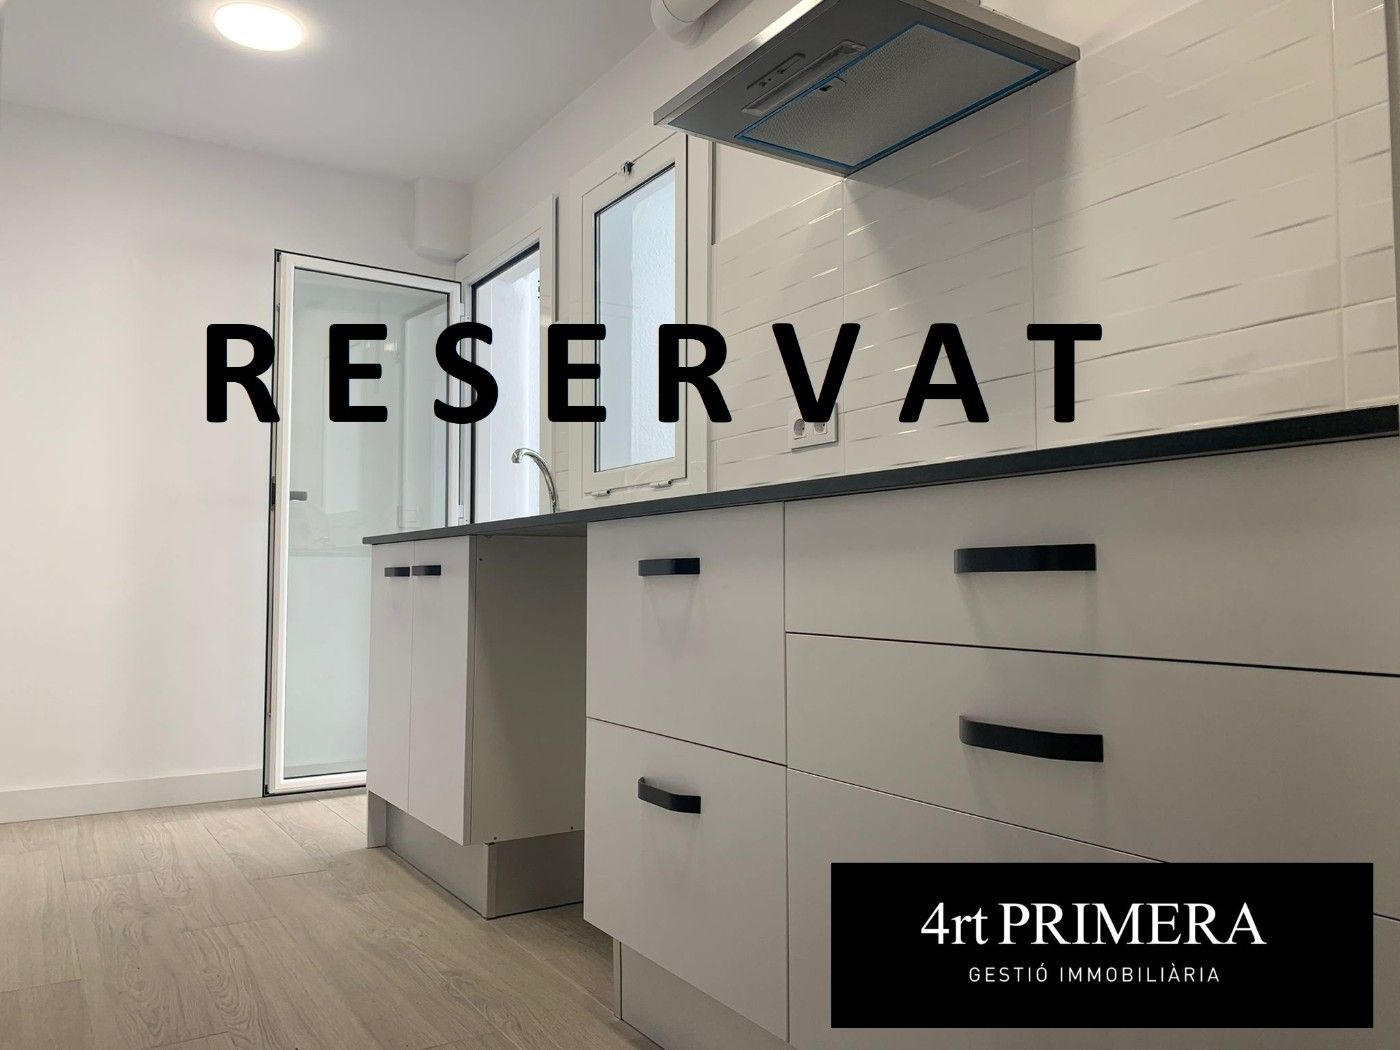 Rent Flat in Carrer camprodon, 17. , totalment reformat,